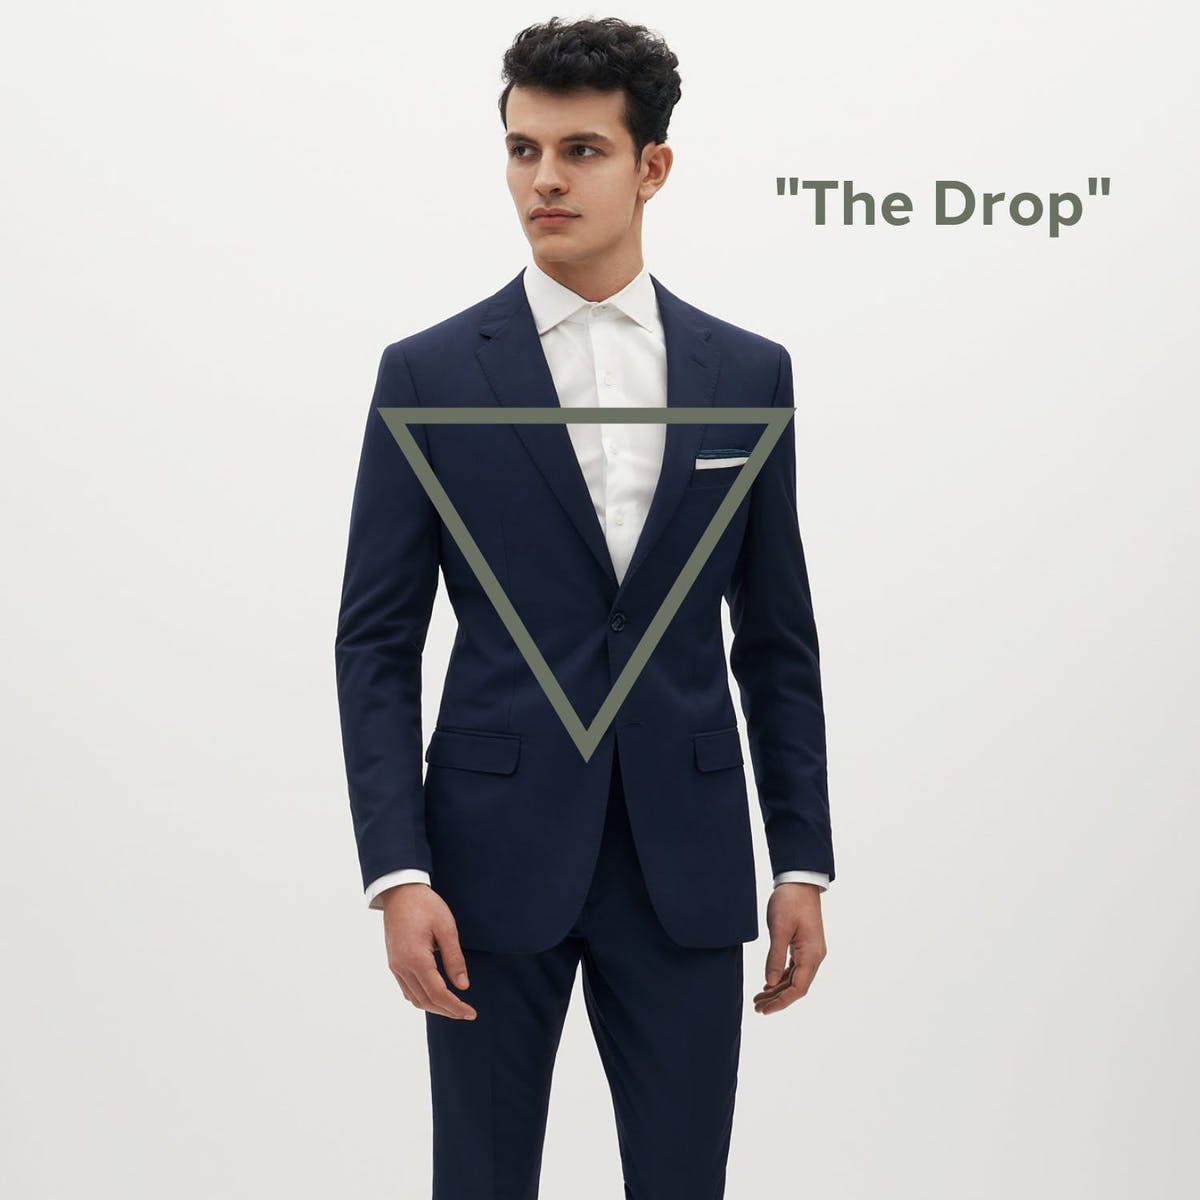 """Tailored Suit Jacket, Men's Custom Fitted Suit in Navy, Fitted Navy Suit, What is """"The Drop"""" in suiting?"""